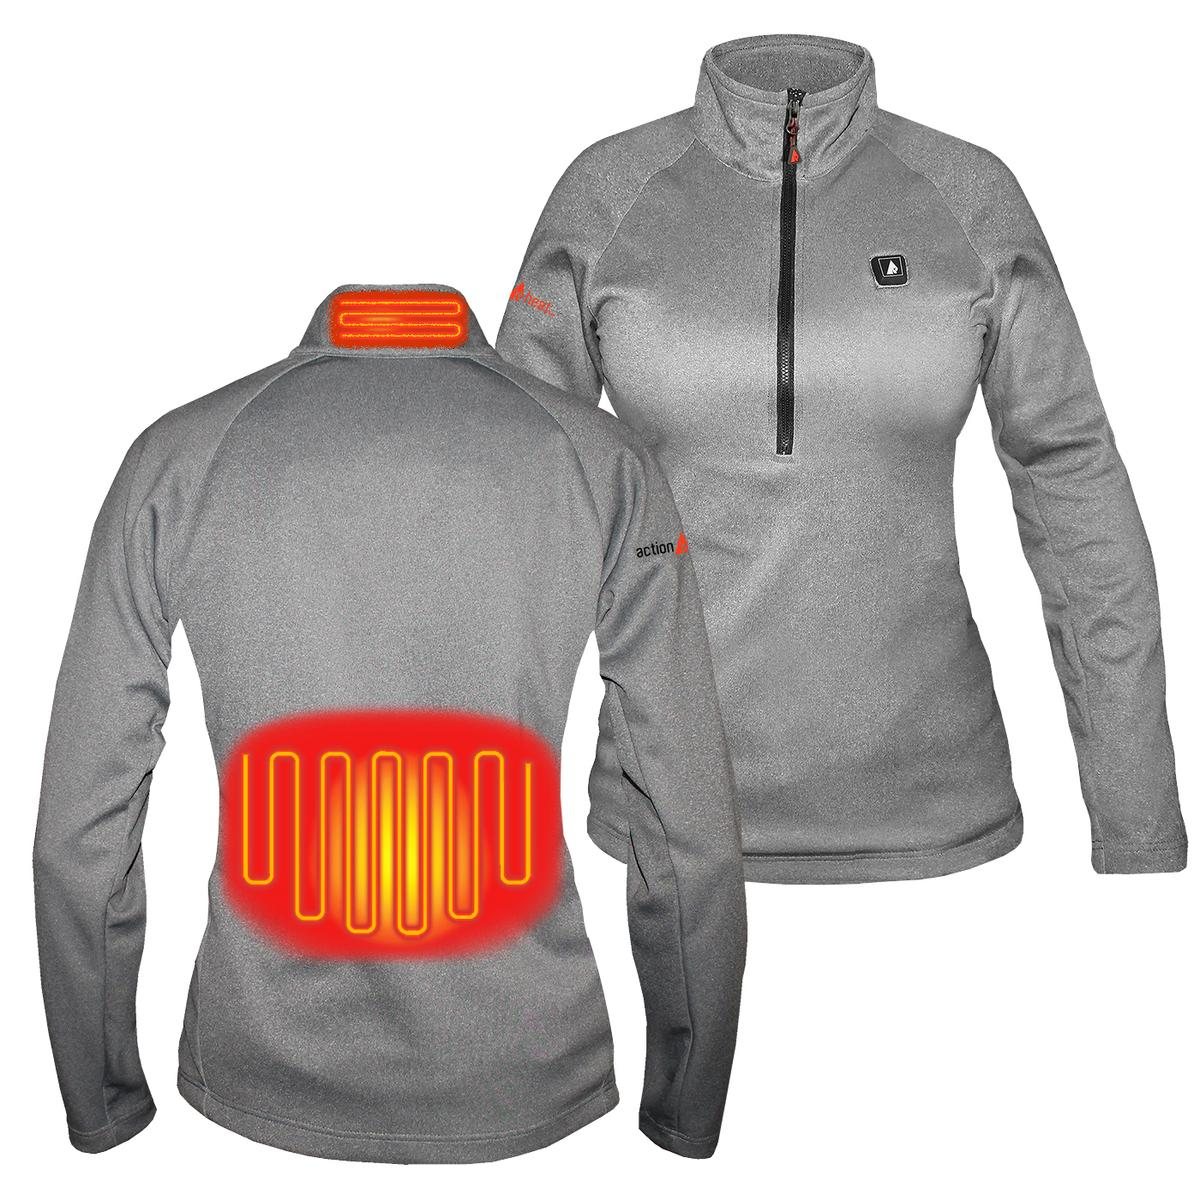 Battery Heated Clothing >> Actionheat 5v Battery Heated 1 2 Zip Pullover Shirt Women S The